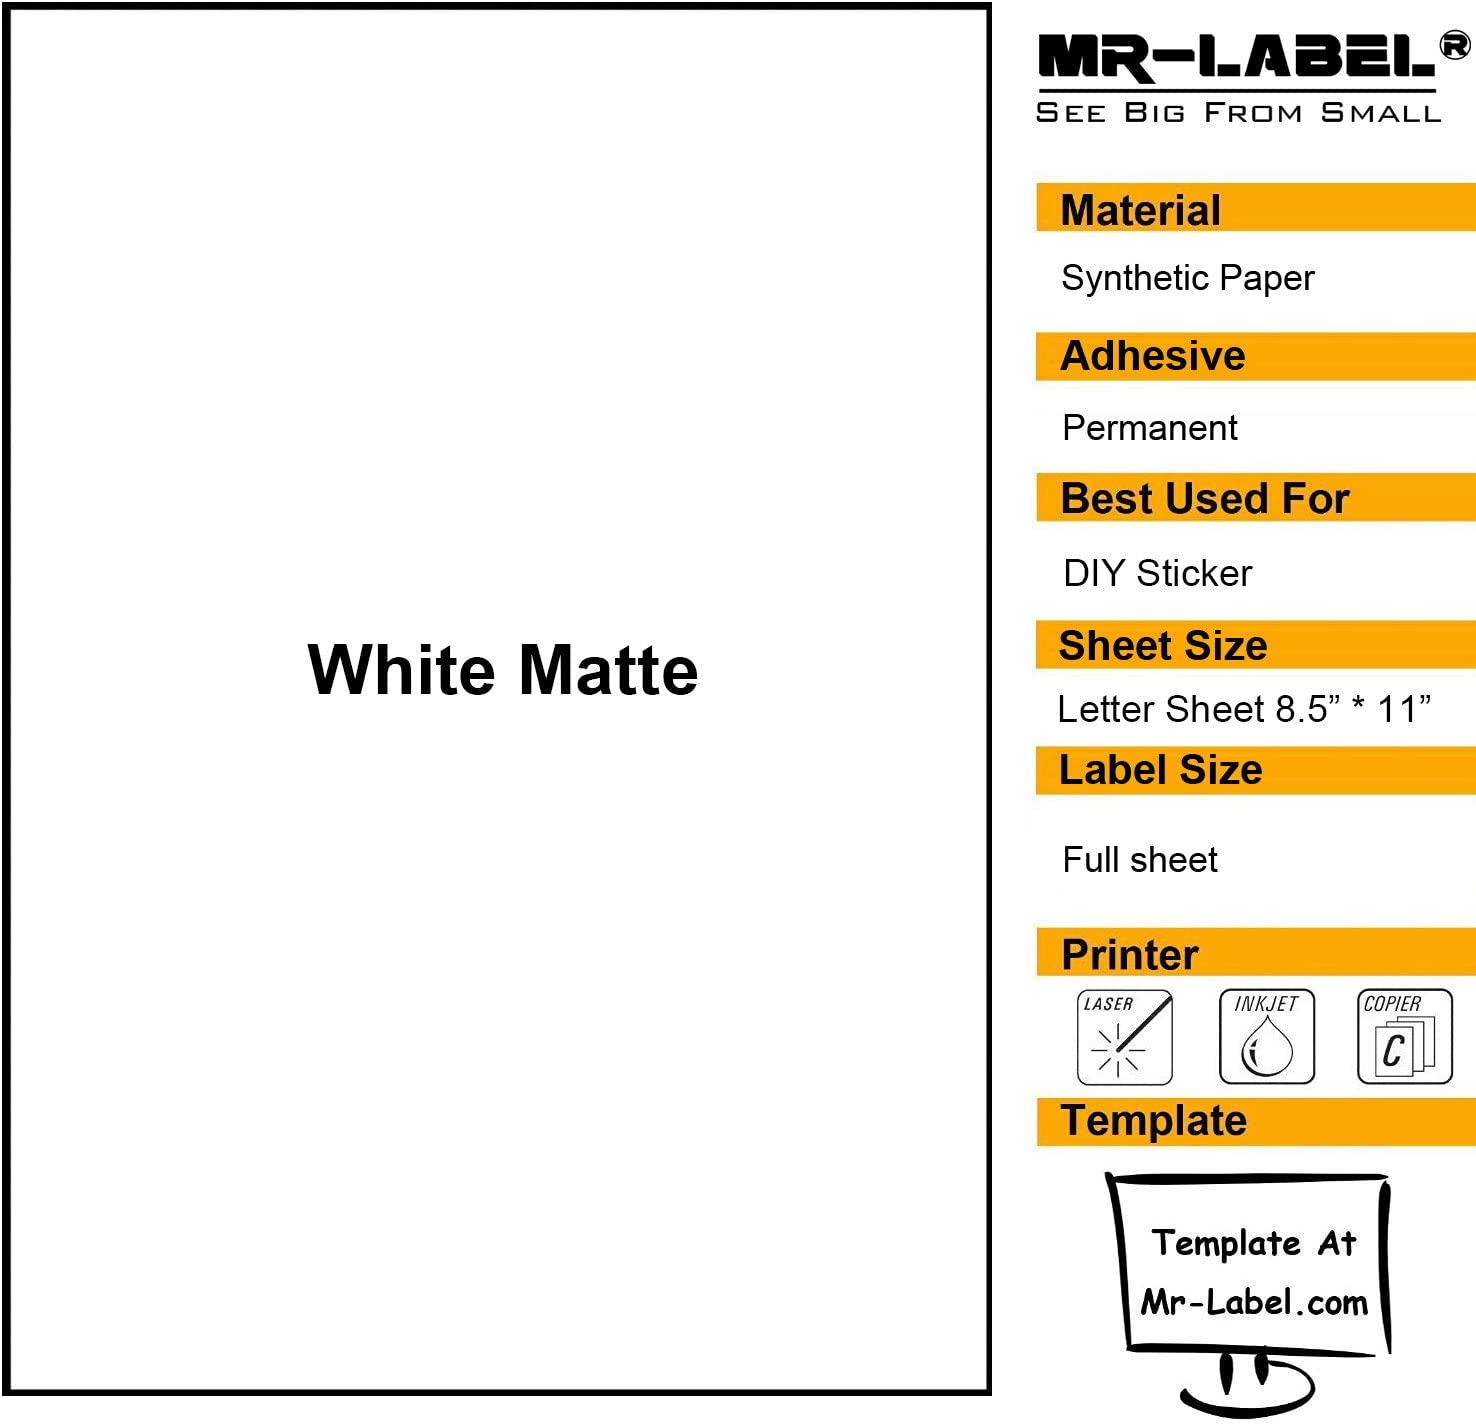 Mr-Label White Matte Waterproof Vinyl Sticker Paper - Full Letter Sheet Label - Inkjet/Laser Compatible - for Home Business (25 sheets/25 Labels)